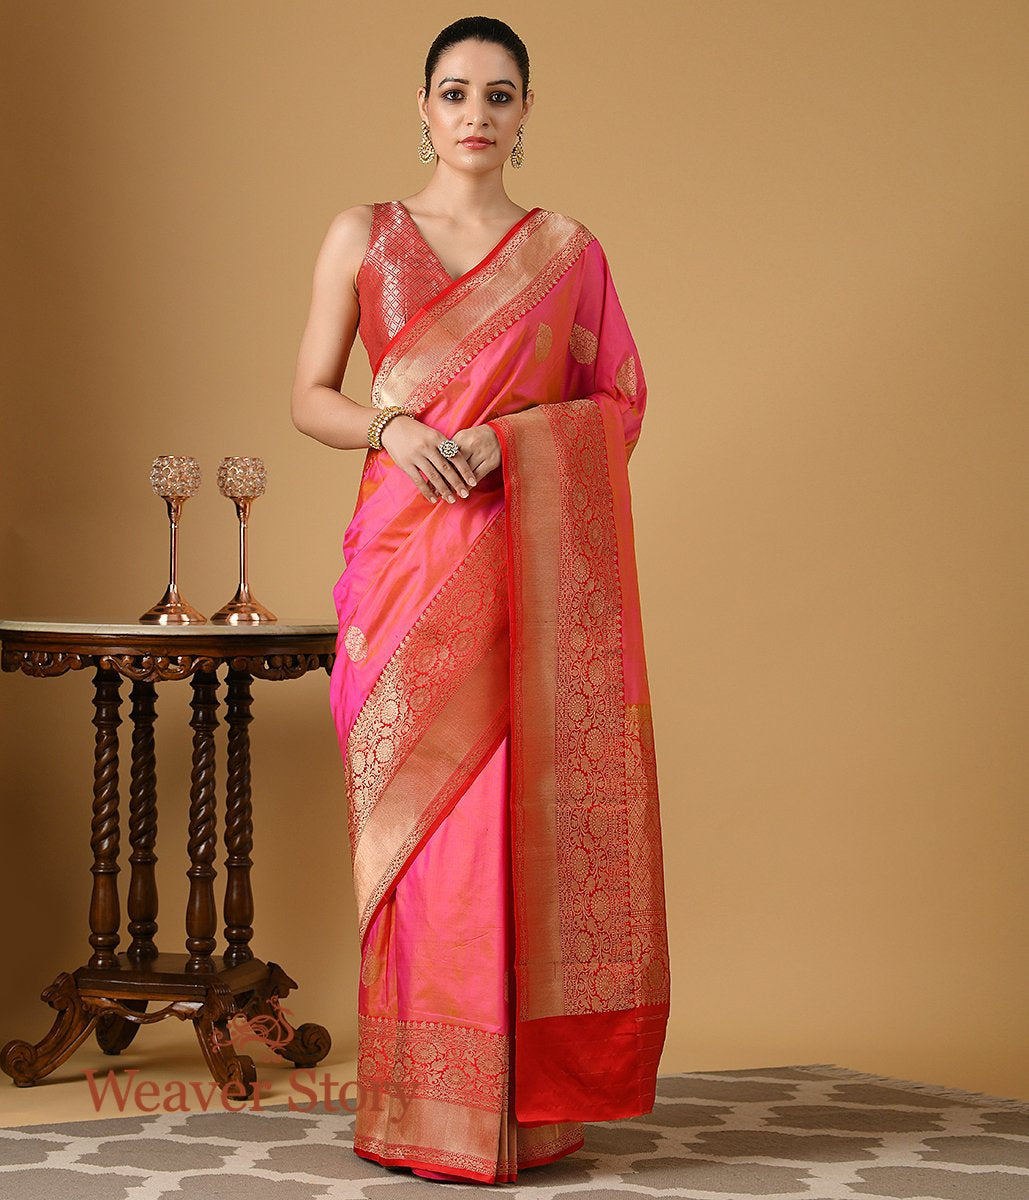 Handwoven Light Pink Banarasi Silk Saree with Red Border and Pallu